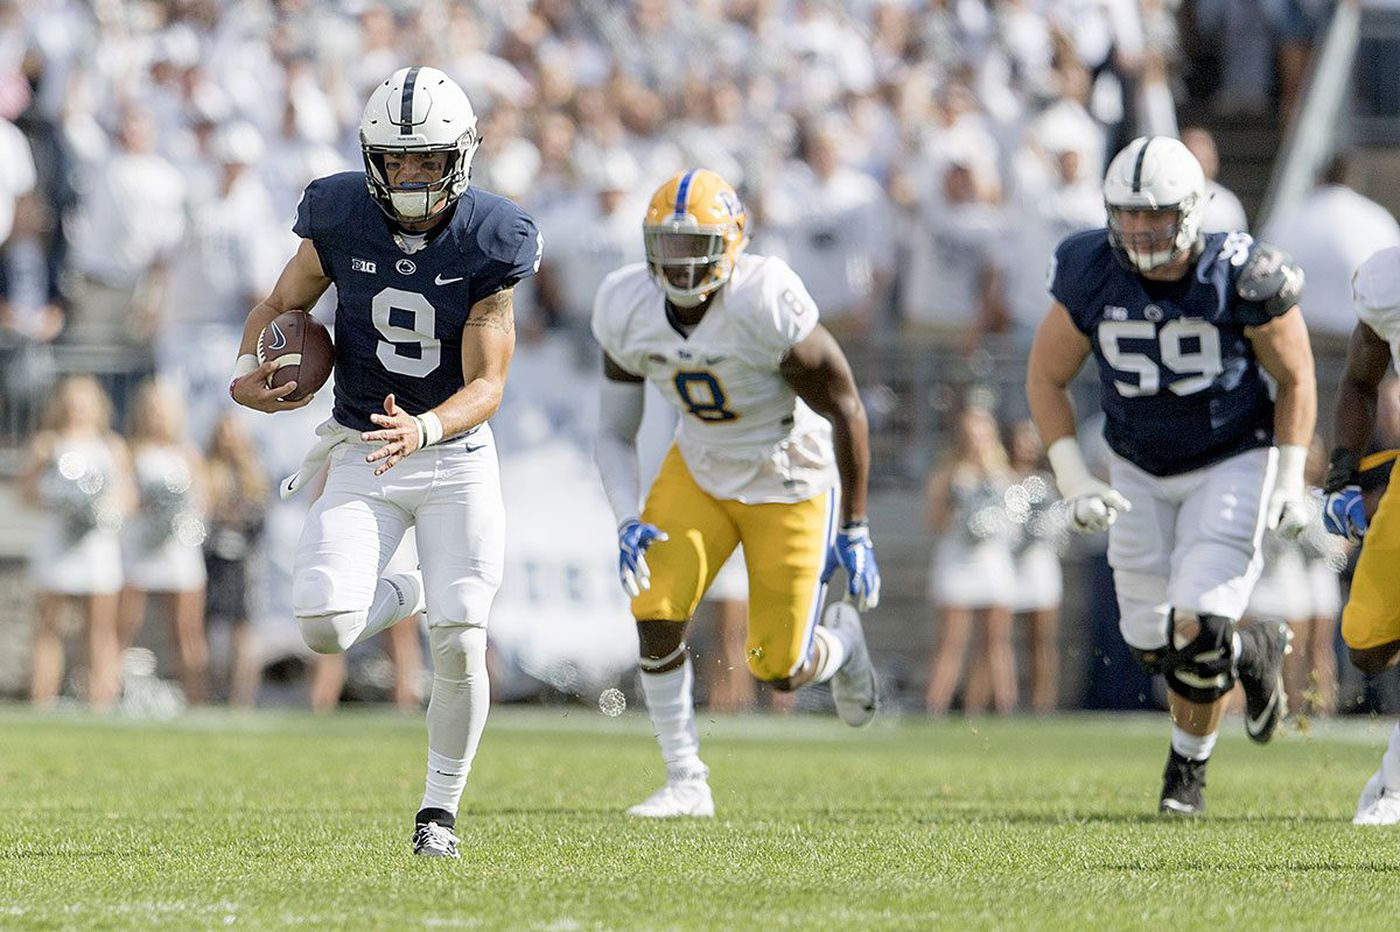 Penn State-Pittsburgh: Facts and figures on the college football rivalry